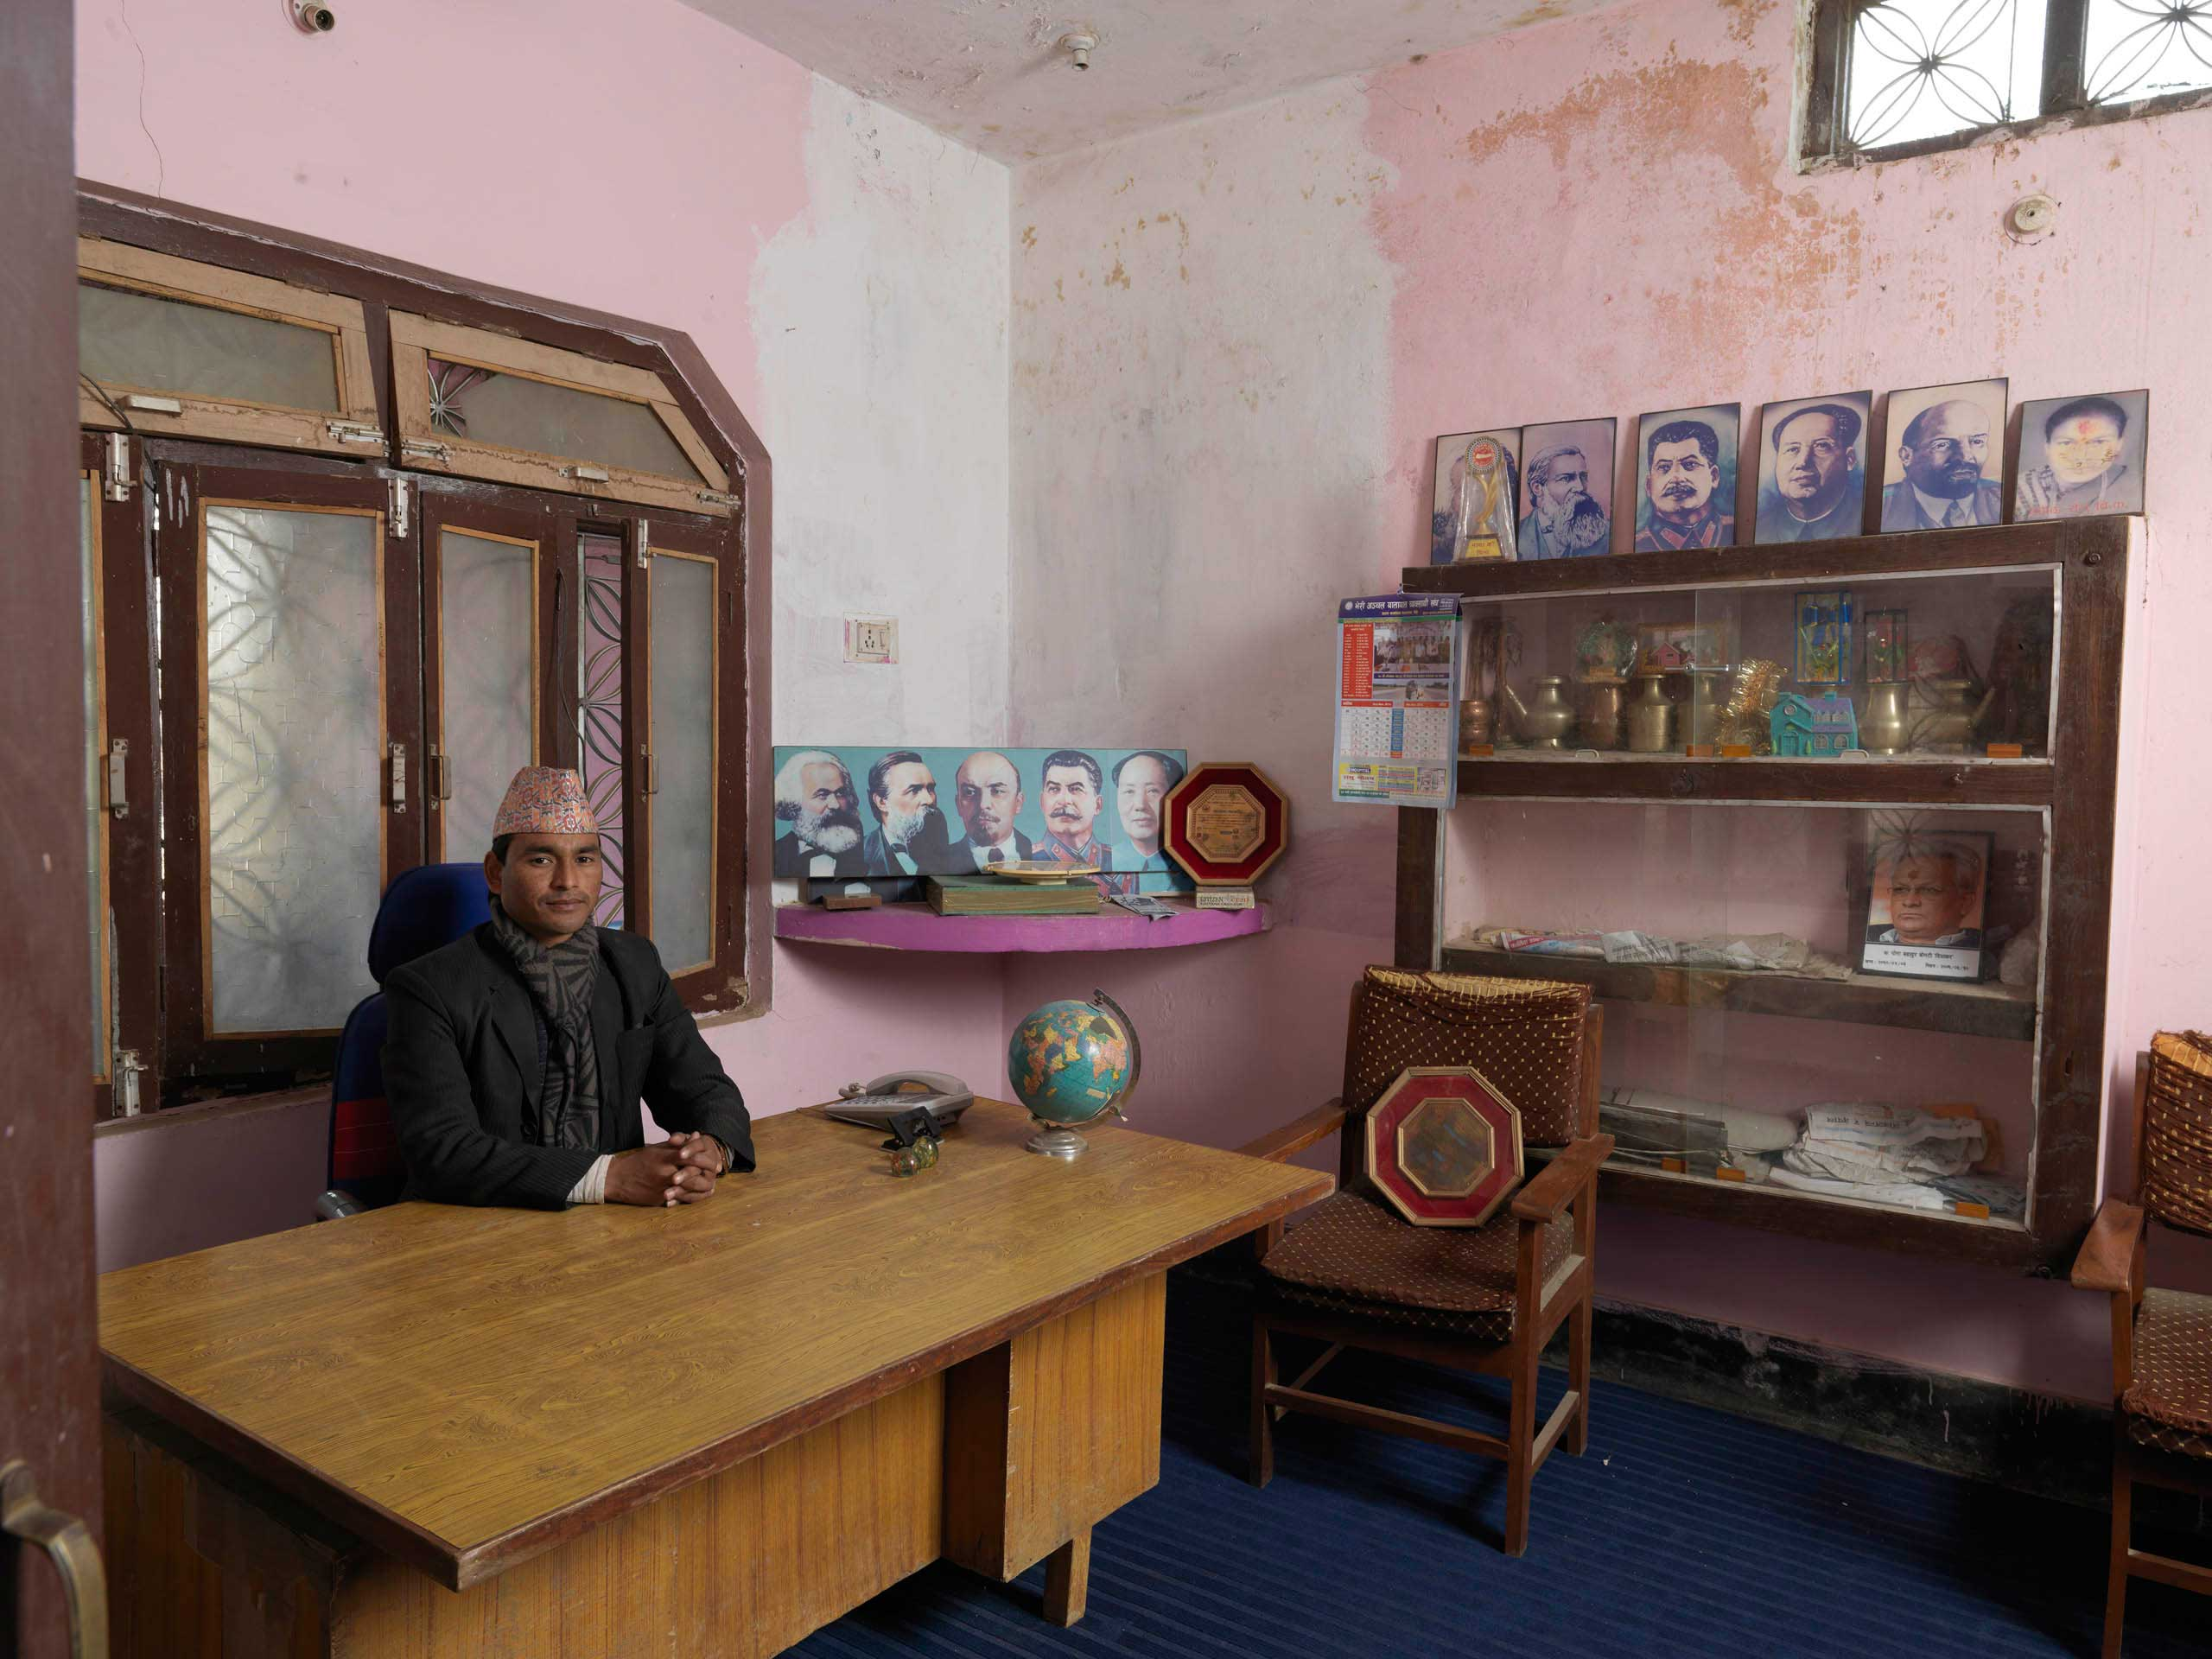 District chairman Akal Bahadur Bam  Rabindra  in his UCPN-M (Maoist) district office in Nepalgunj city, Nepal. UCPN-M came in 3rd (after Nepali Congress and UML) in 2013 elections, with 80 of 575 elected seats.